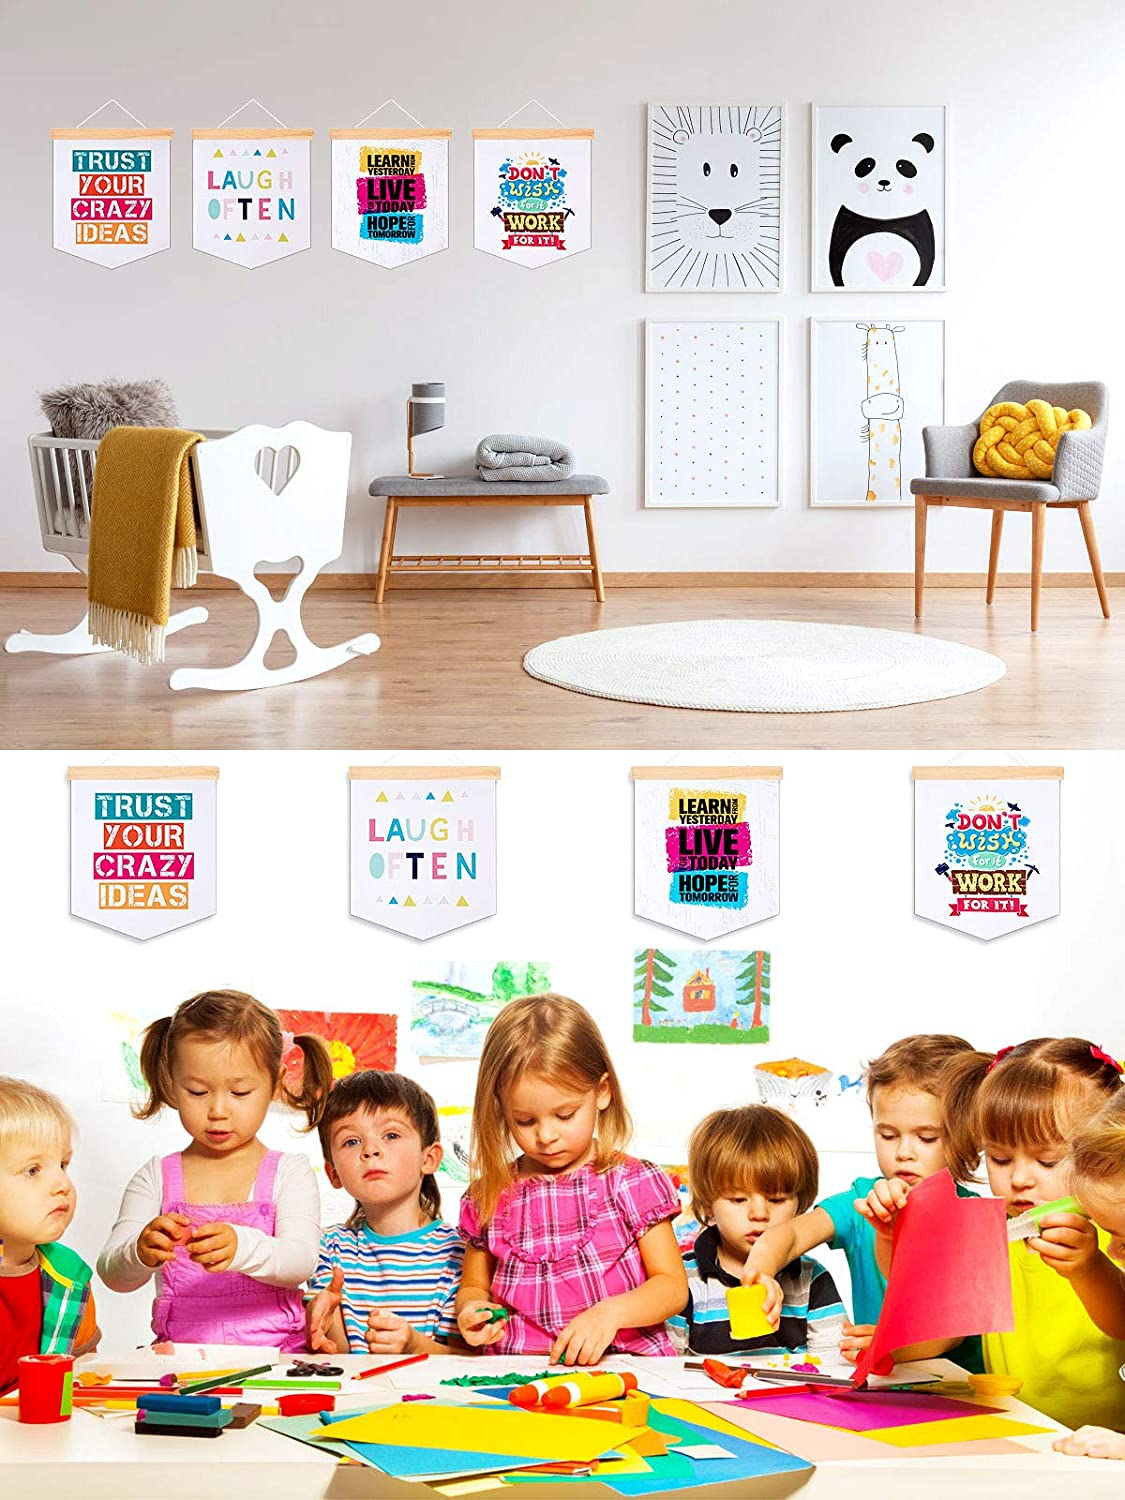 CINPIUK Inspirational Quote Hanging Banner Wall Poster for Nursery Home Classroom Decoration